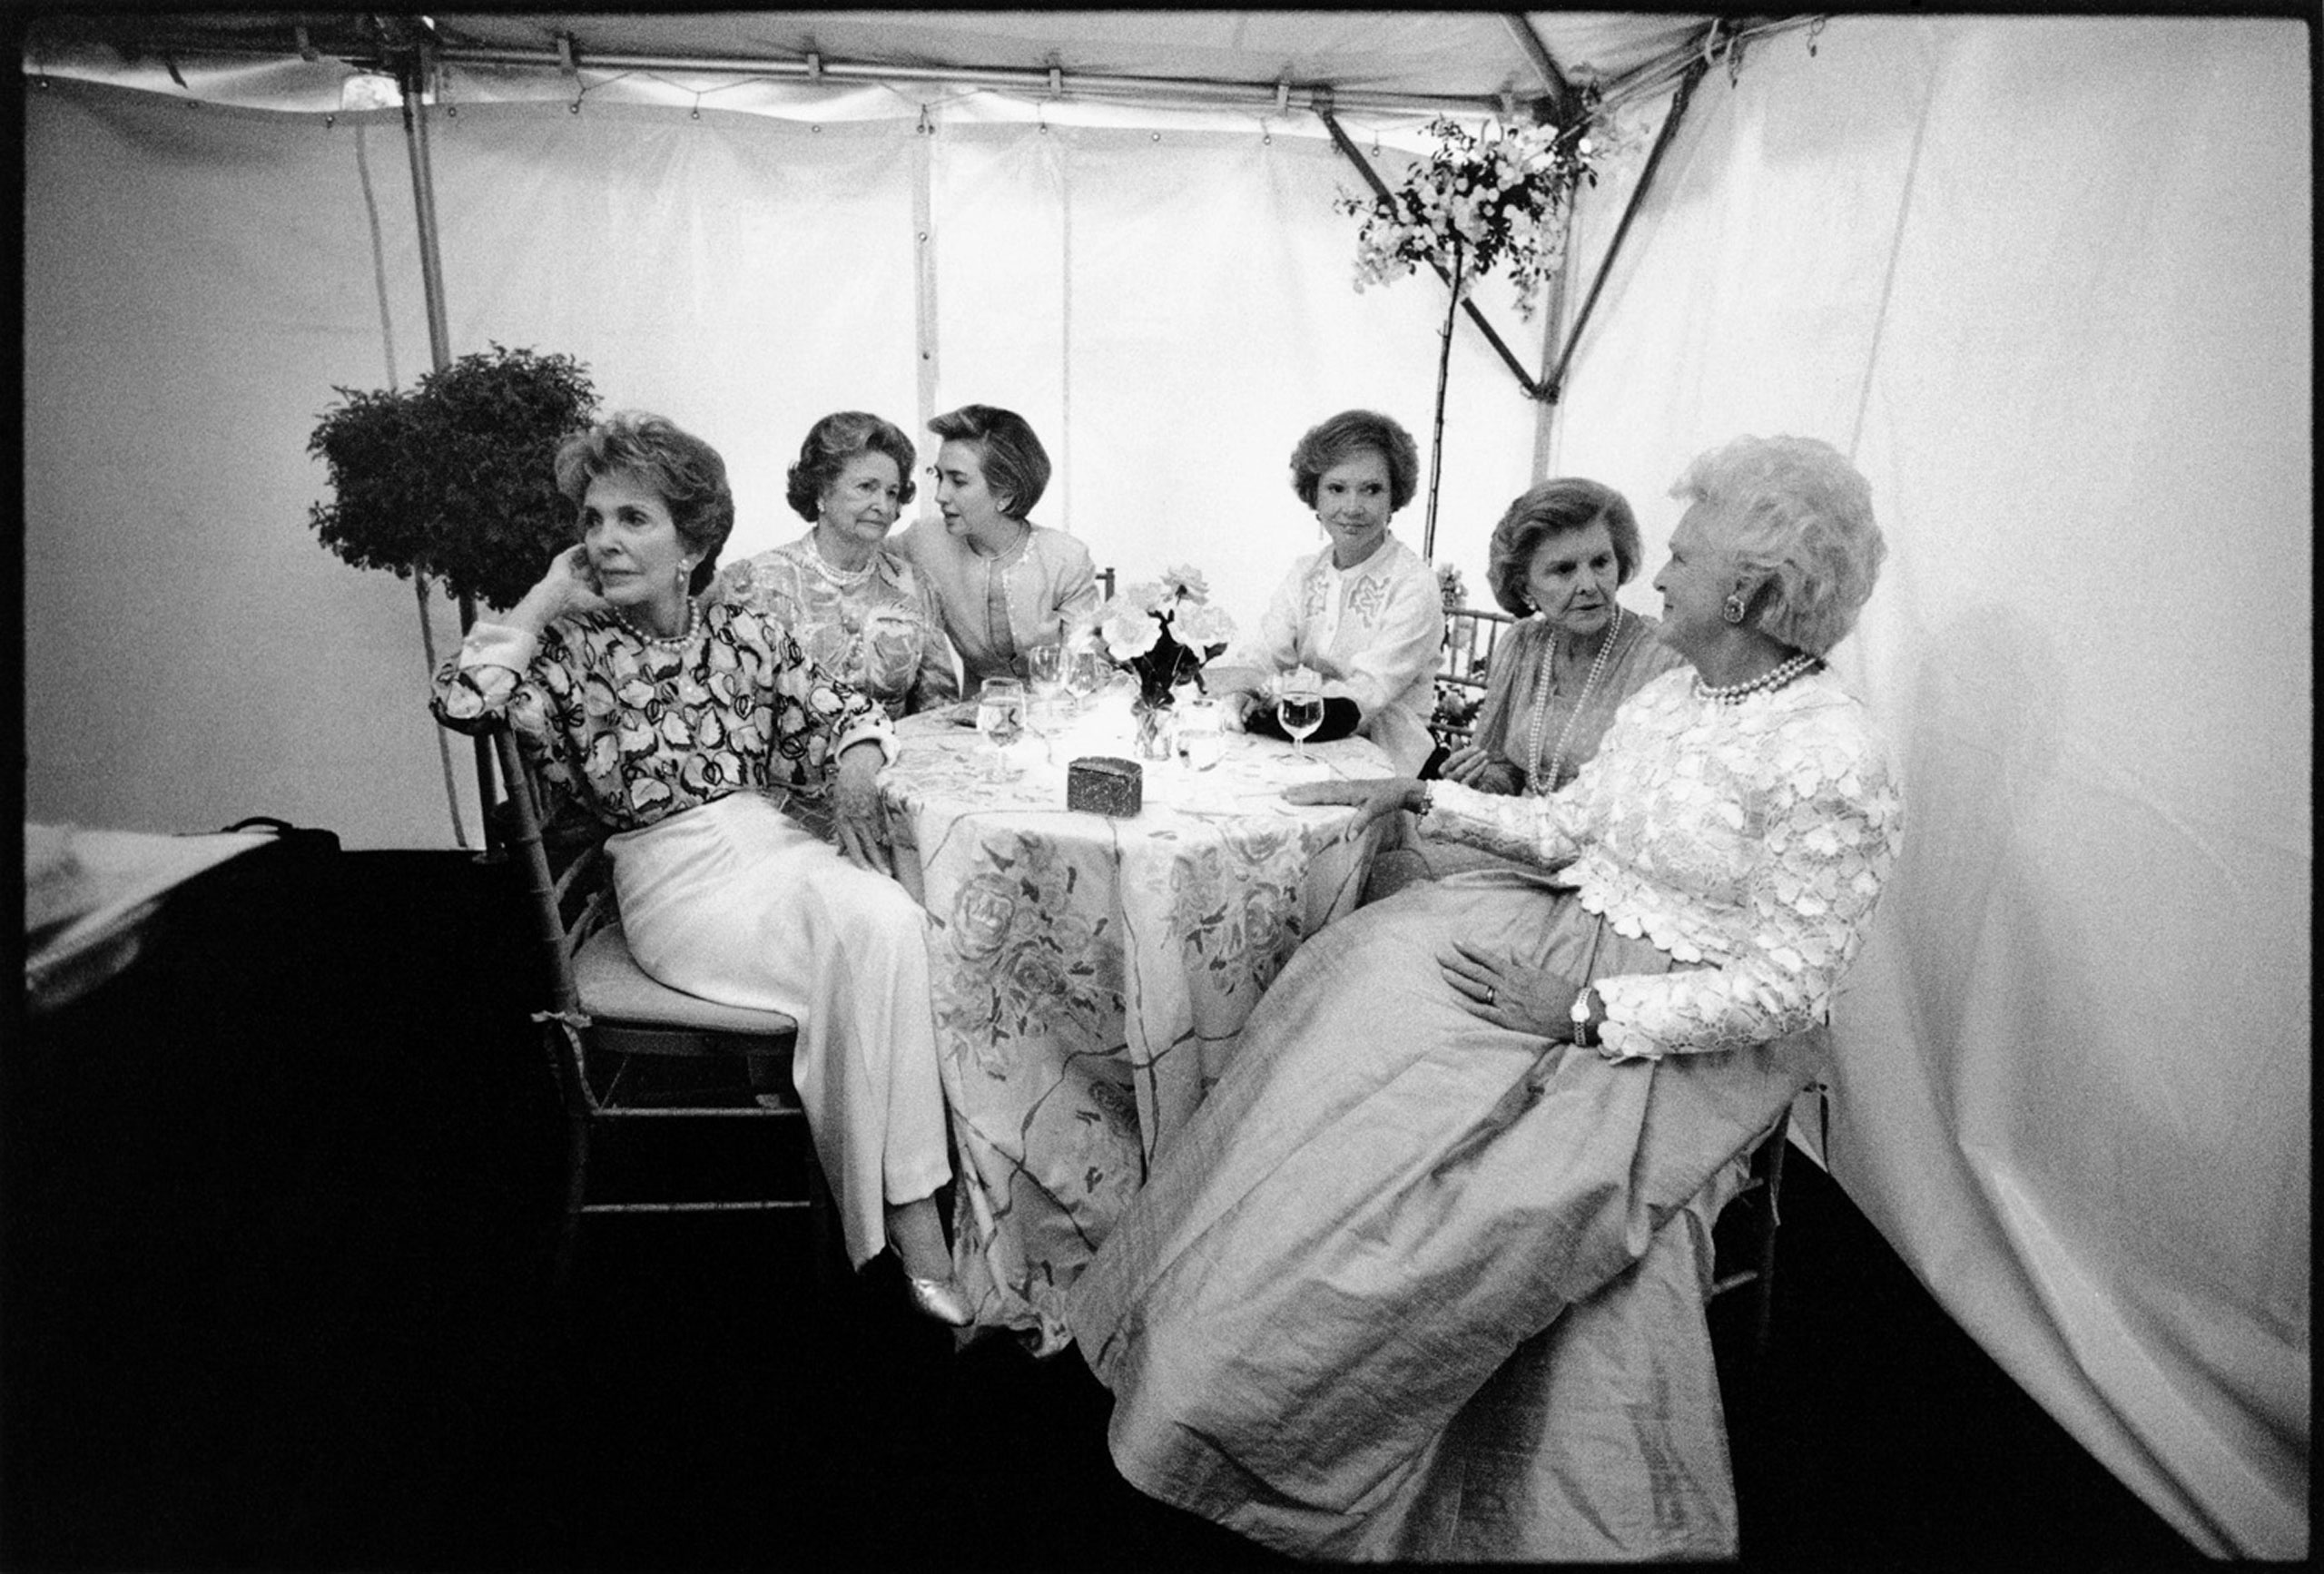 First Ladies (from left to right) Nancy Reagan, Lady Bird Johnson, Hillary Rodham Clinton, Rosalynn Carter, Betty Ford, and Barbara Bush at the  National Garden Gala, A Tribute to America's First Ladies , May 11, 1994.